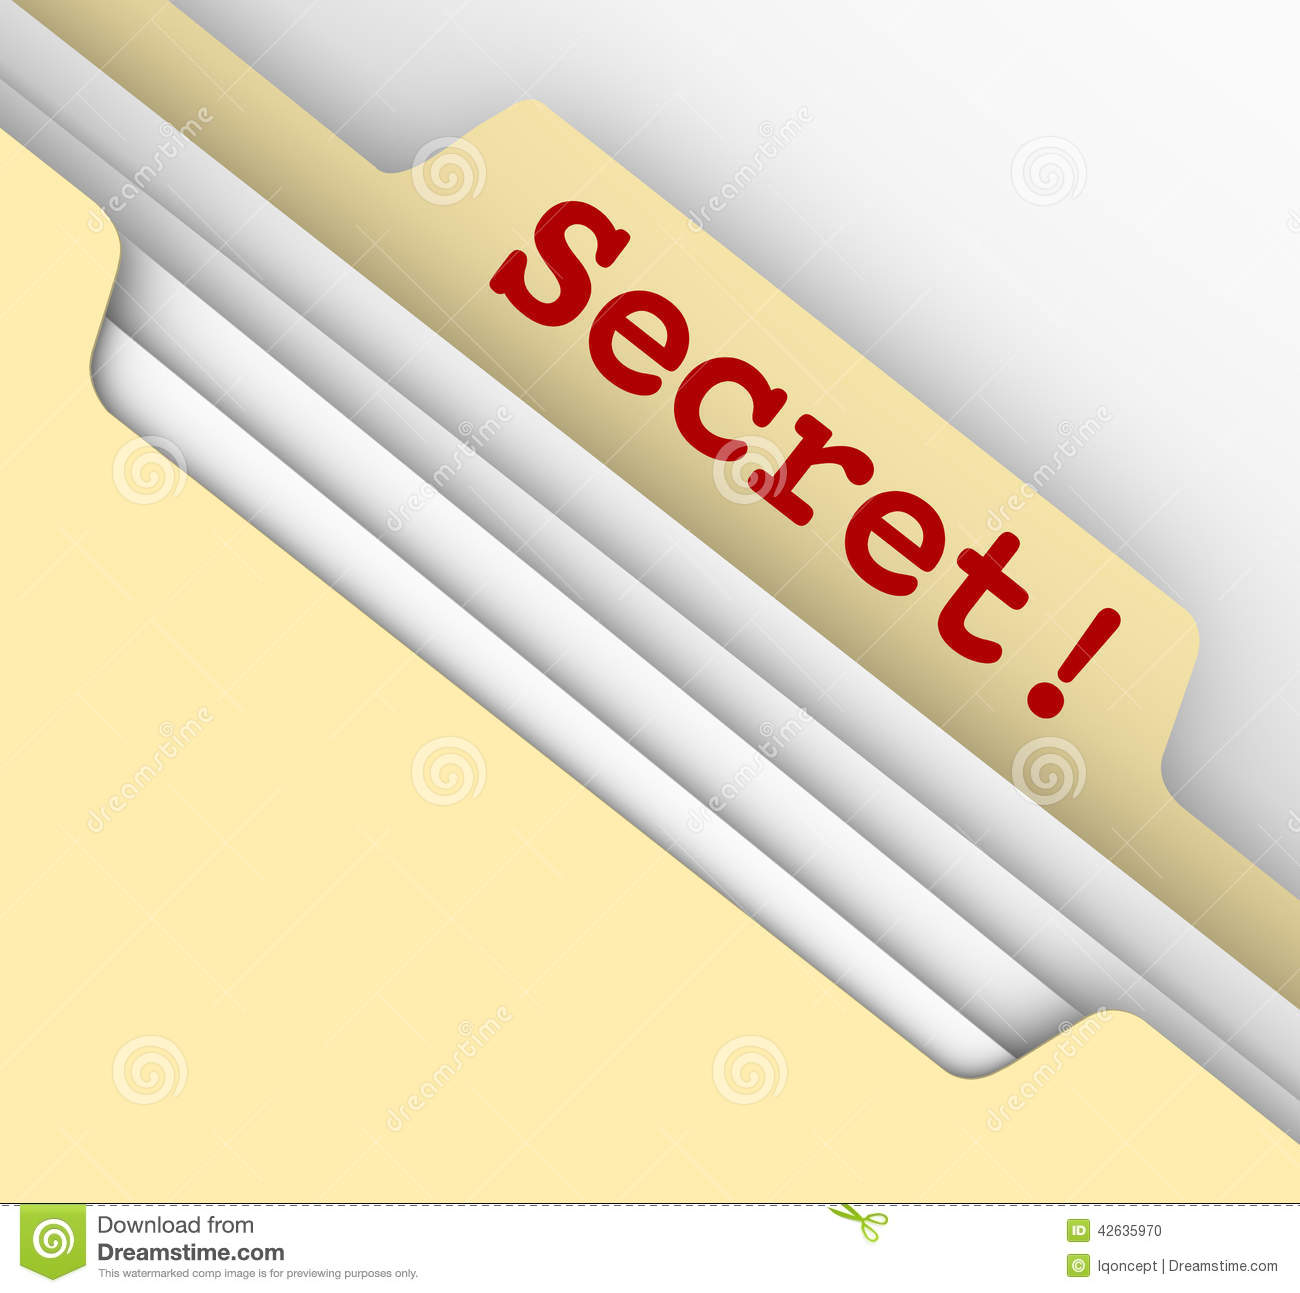 secret calculator folder free instructions